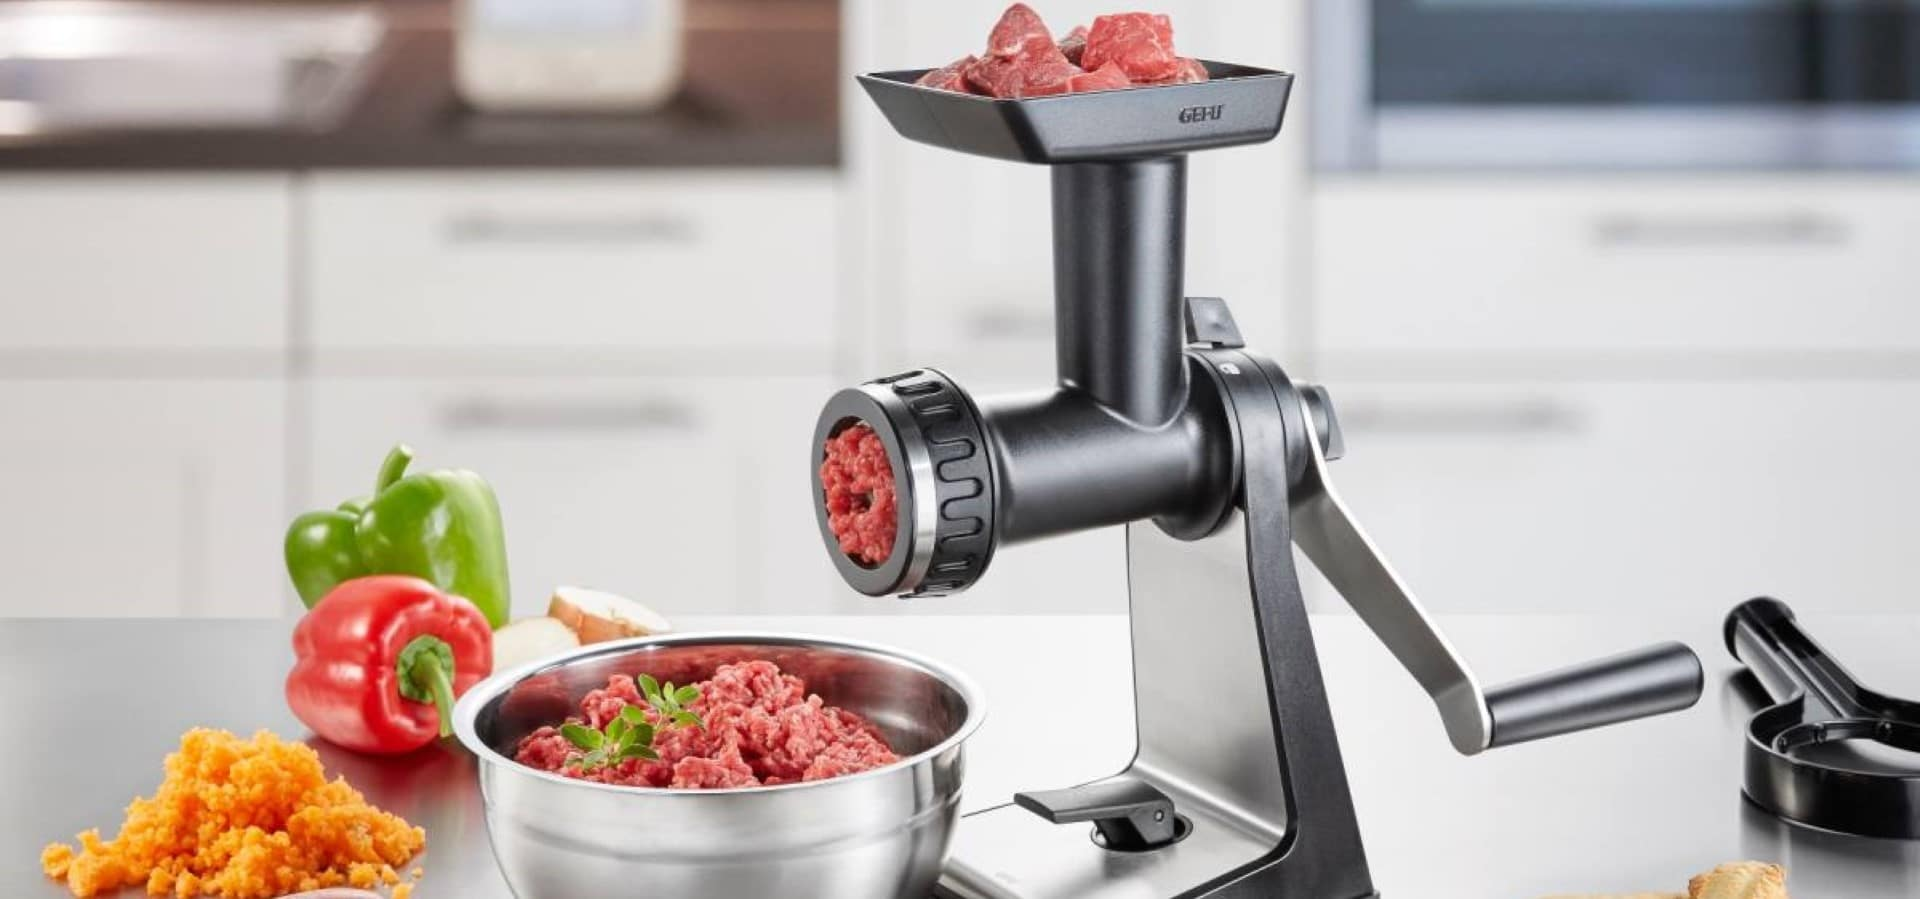 Owning a meat grinder